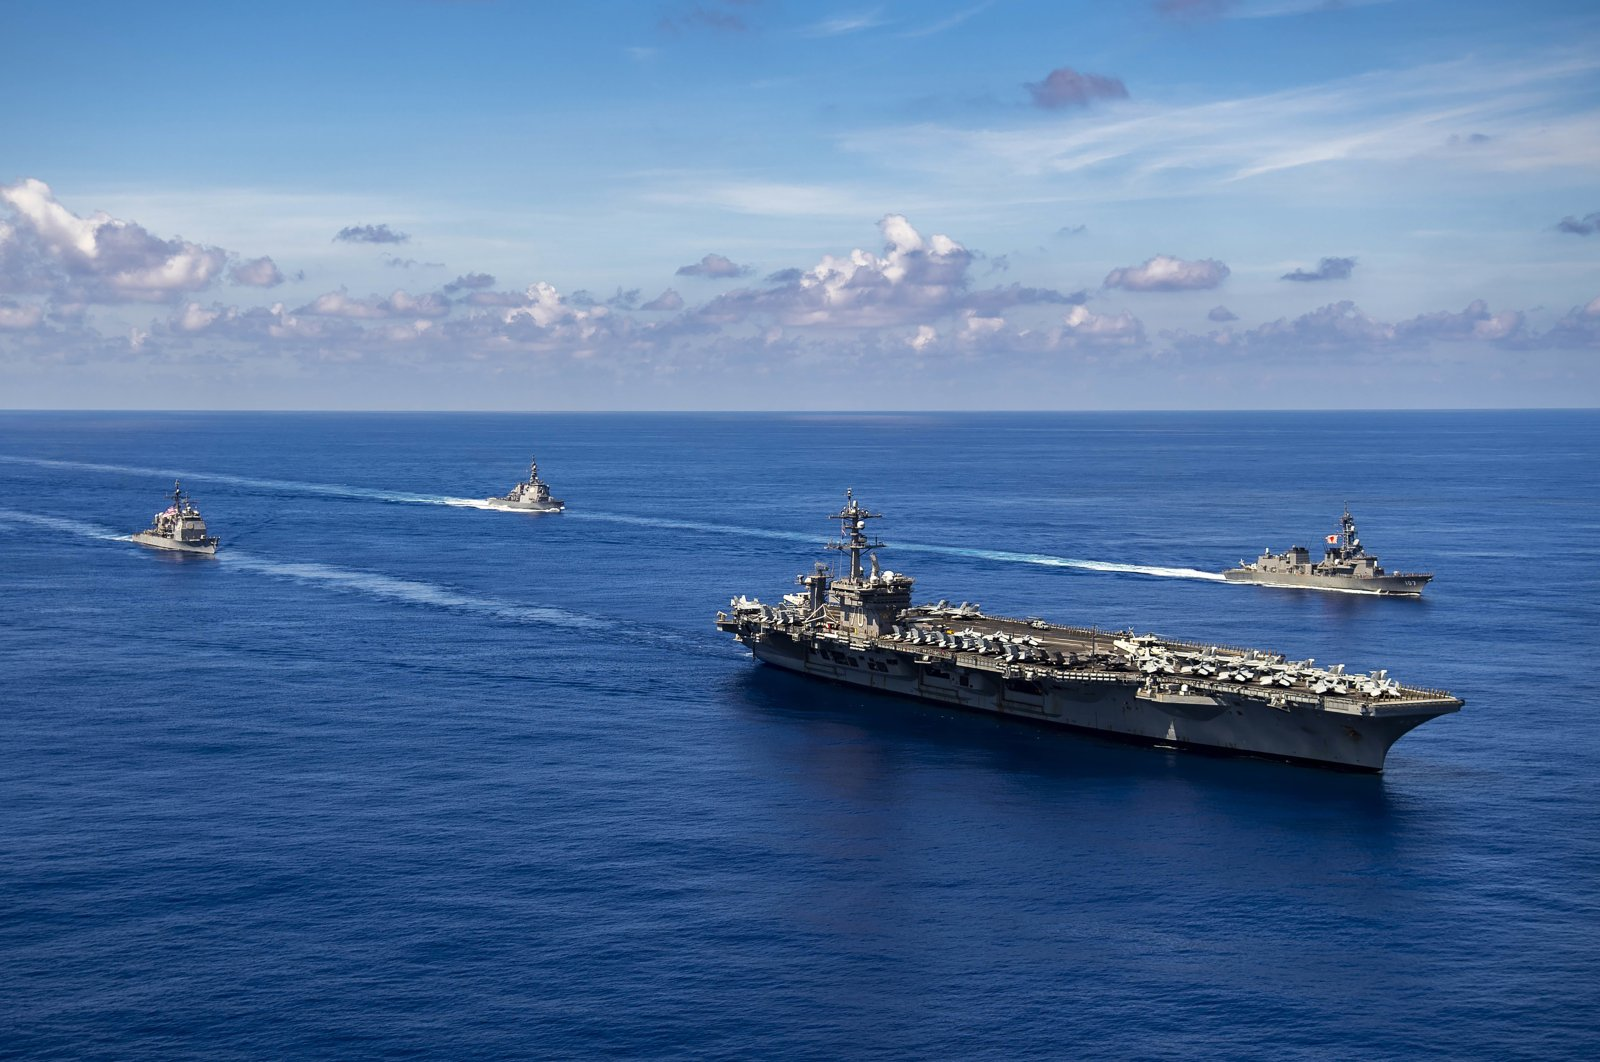 In this photo released by the U.S. Navy, the Nimitz-class aircraft carrier USS Carl Vinson (CVN 70), the Ticonderoga-class guided-missile cruiser USS Lake Champlain (CG 57), and the Arleigh Burke-class guided-missile destroyer USS Chafee (DDG 90) conduct a passing honors ceremony with the Japan Maritime Self-Defense Force (JMSDF) Murasame-class destroyer JS Ikazuchi (DD 107) and the Kongo-class guided-missile destroyer JS Chokai (DDG 176) in the Pacific Ocean, Sept. 19, 2021. (AP Photo)